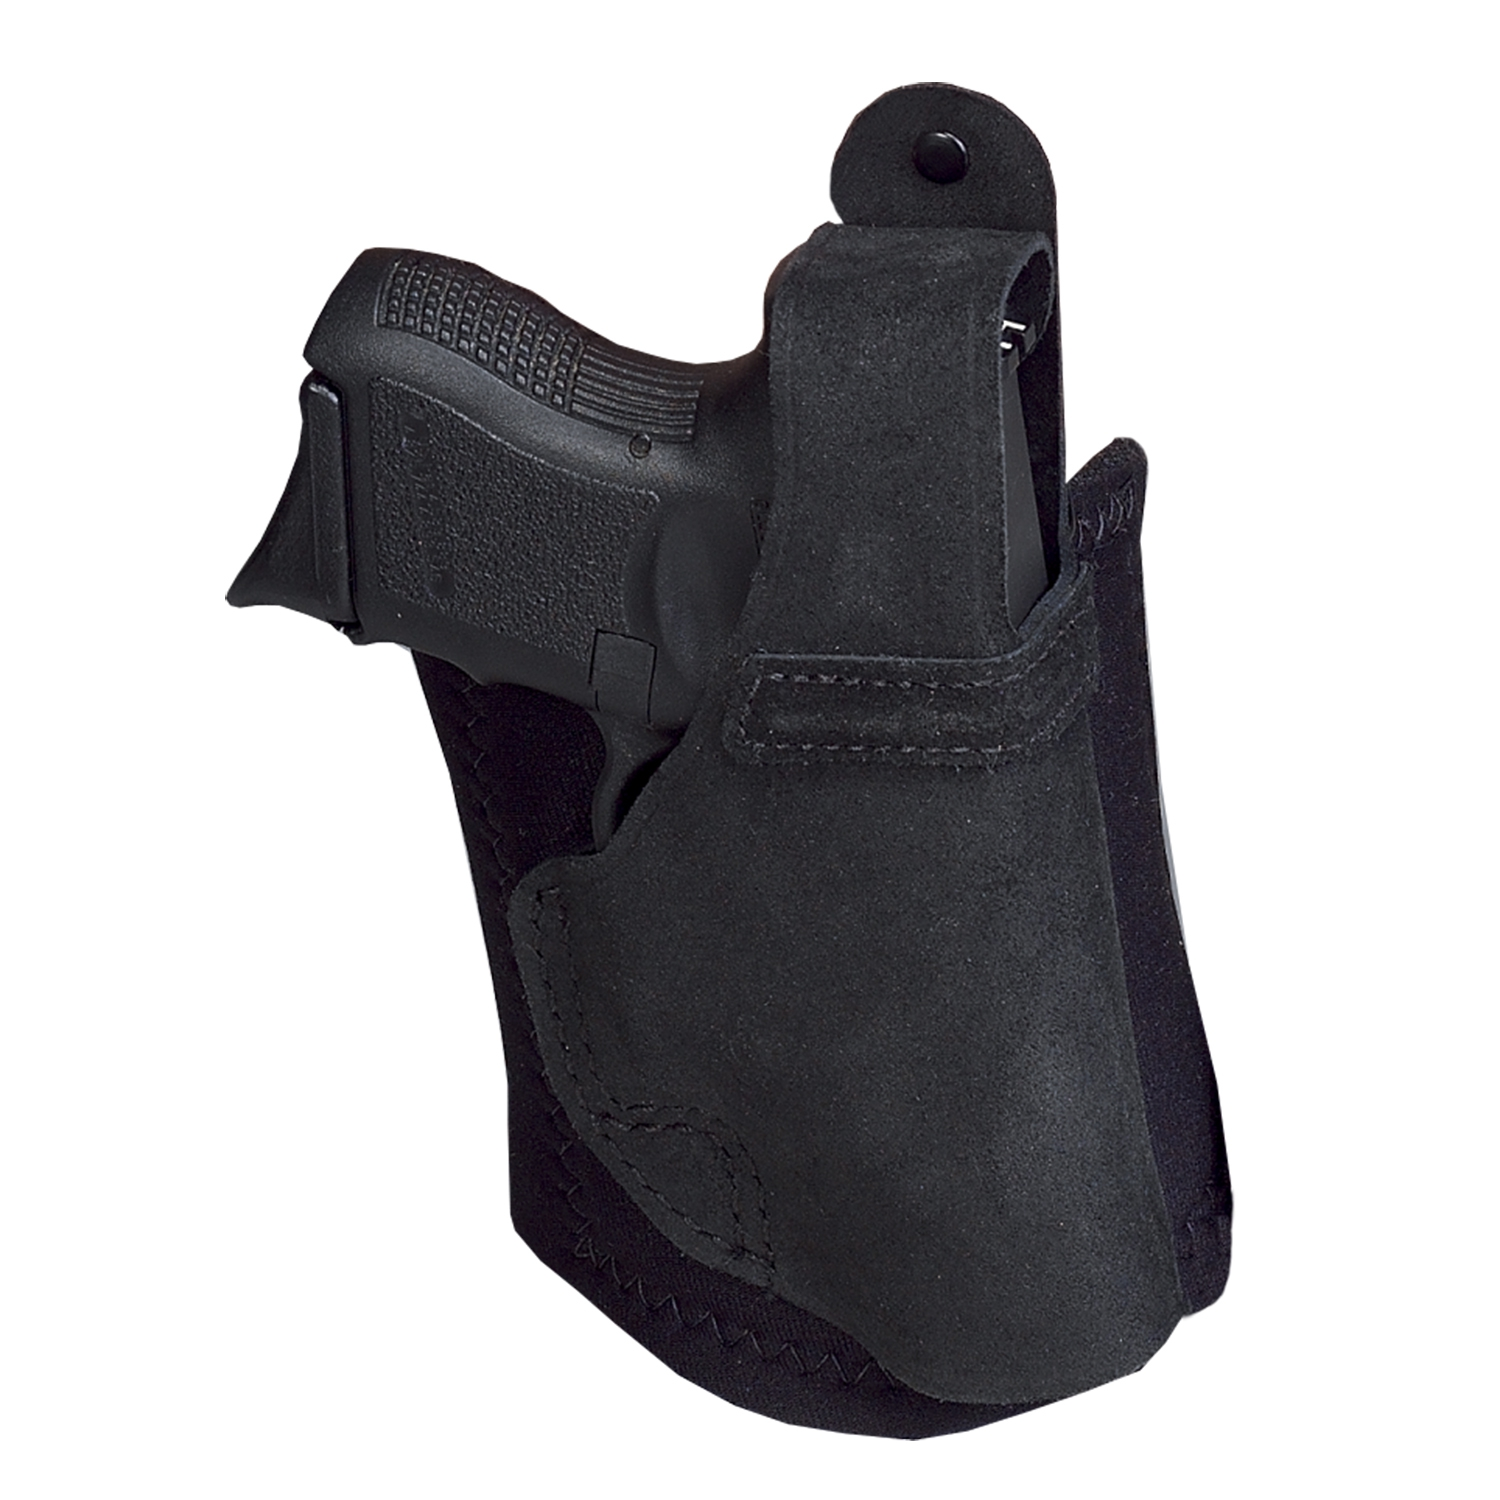 Ankle Lite Ankle Holster / Neoprene Ankle Band - RIGHT-HAND - AL436 - Galco - IS